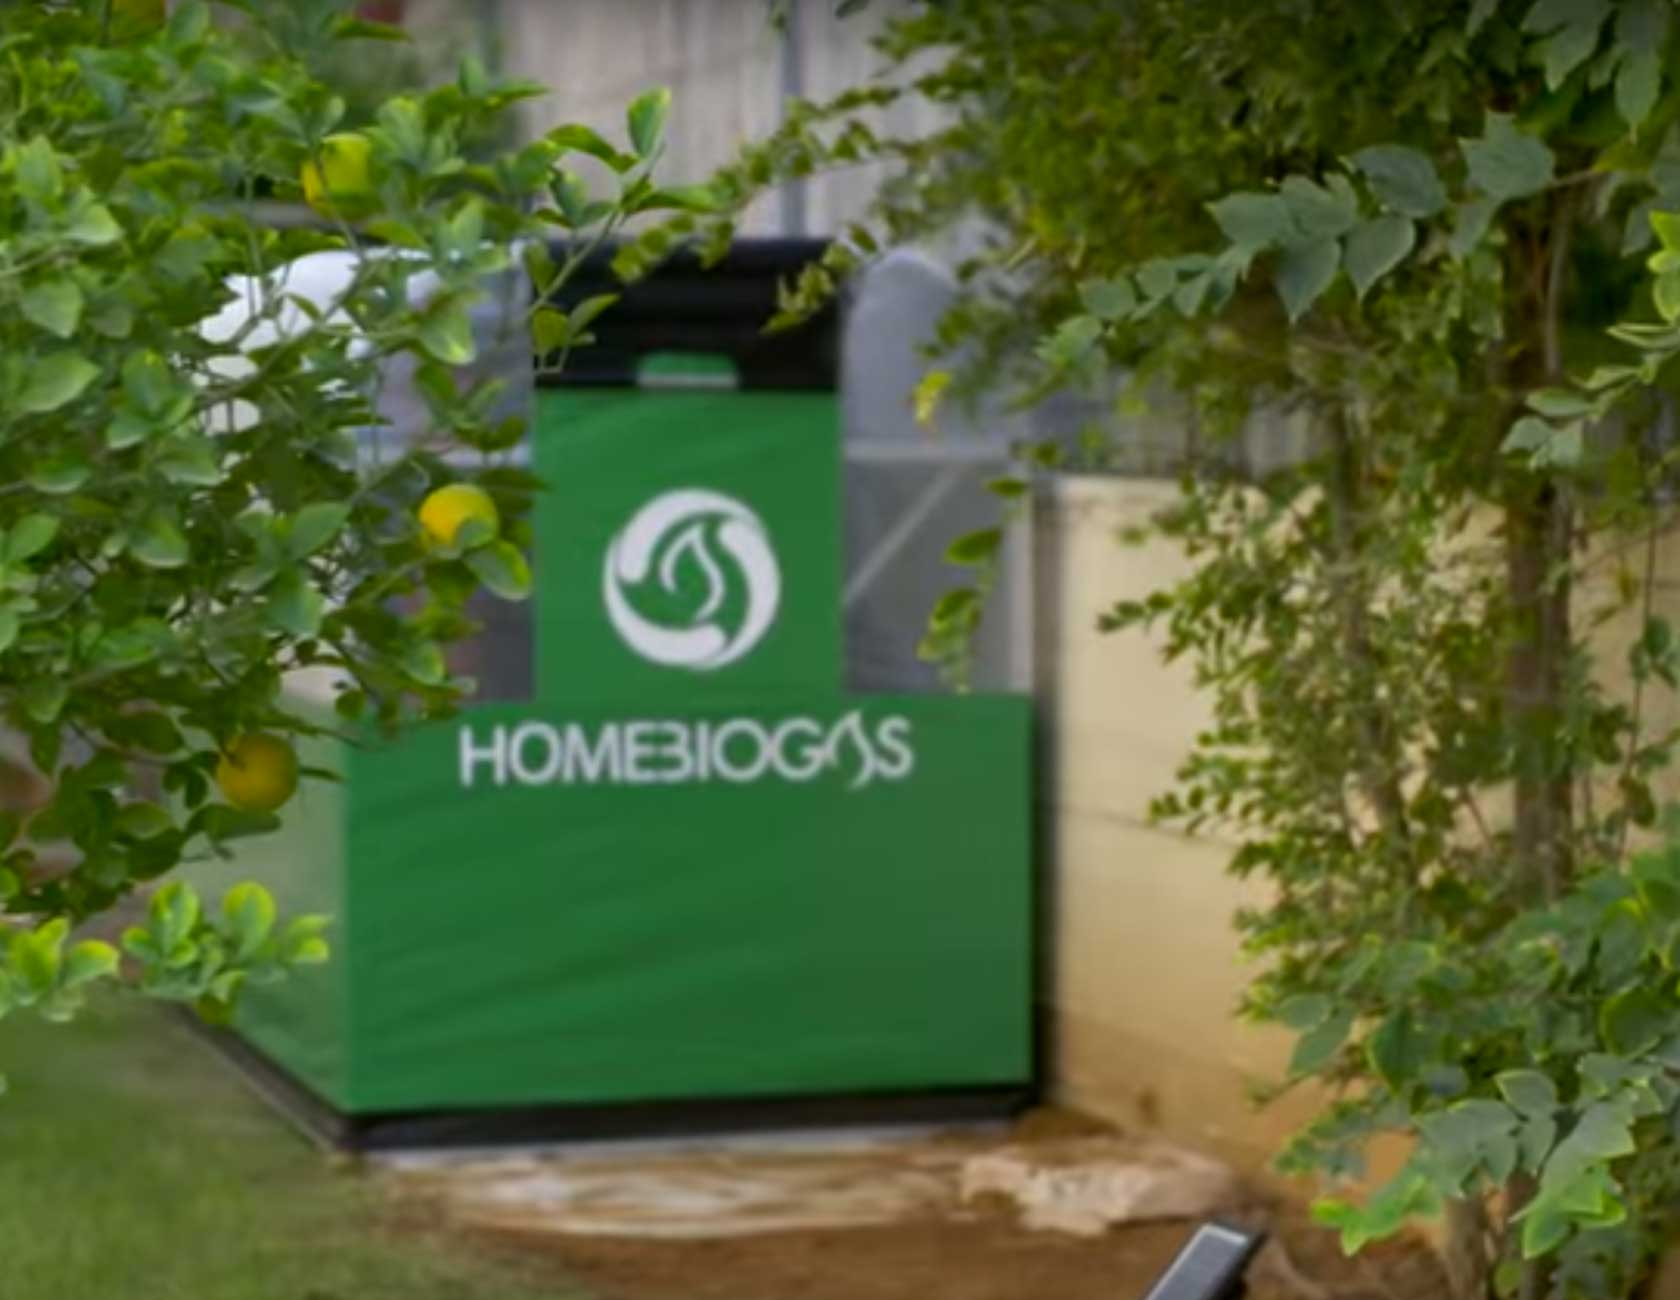 HomeBiogas in a back yard looks like a tent